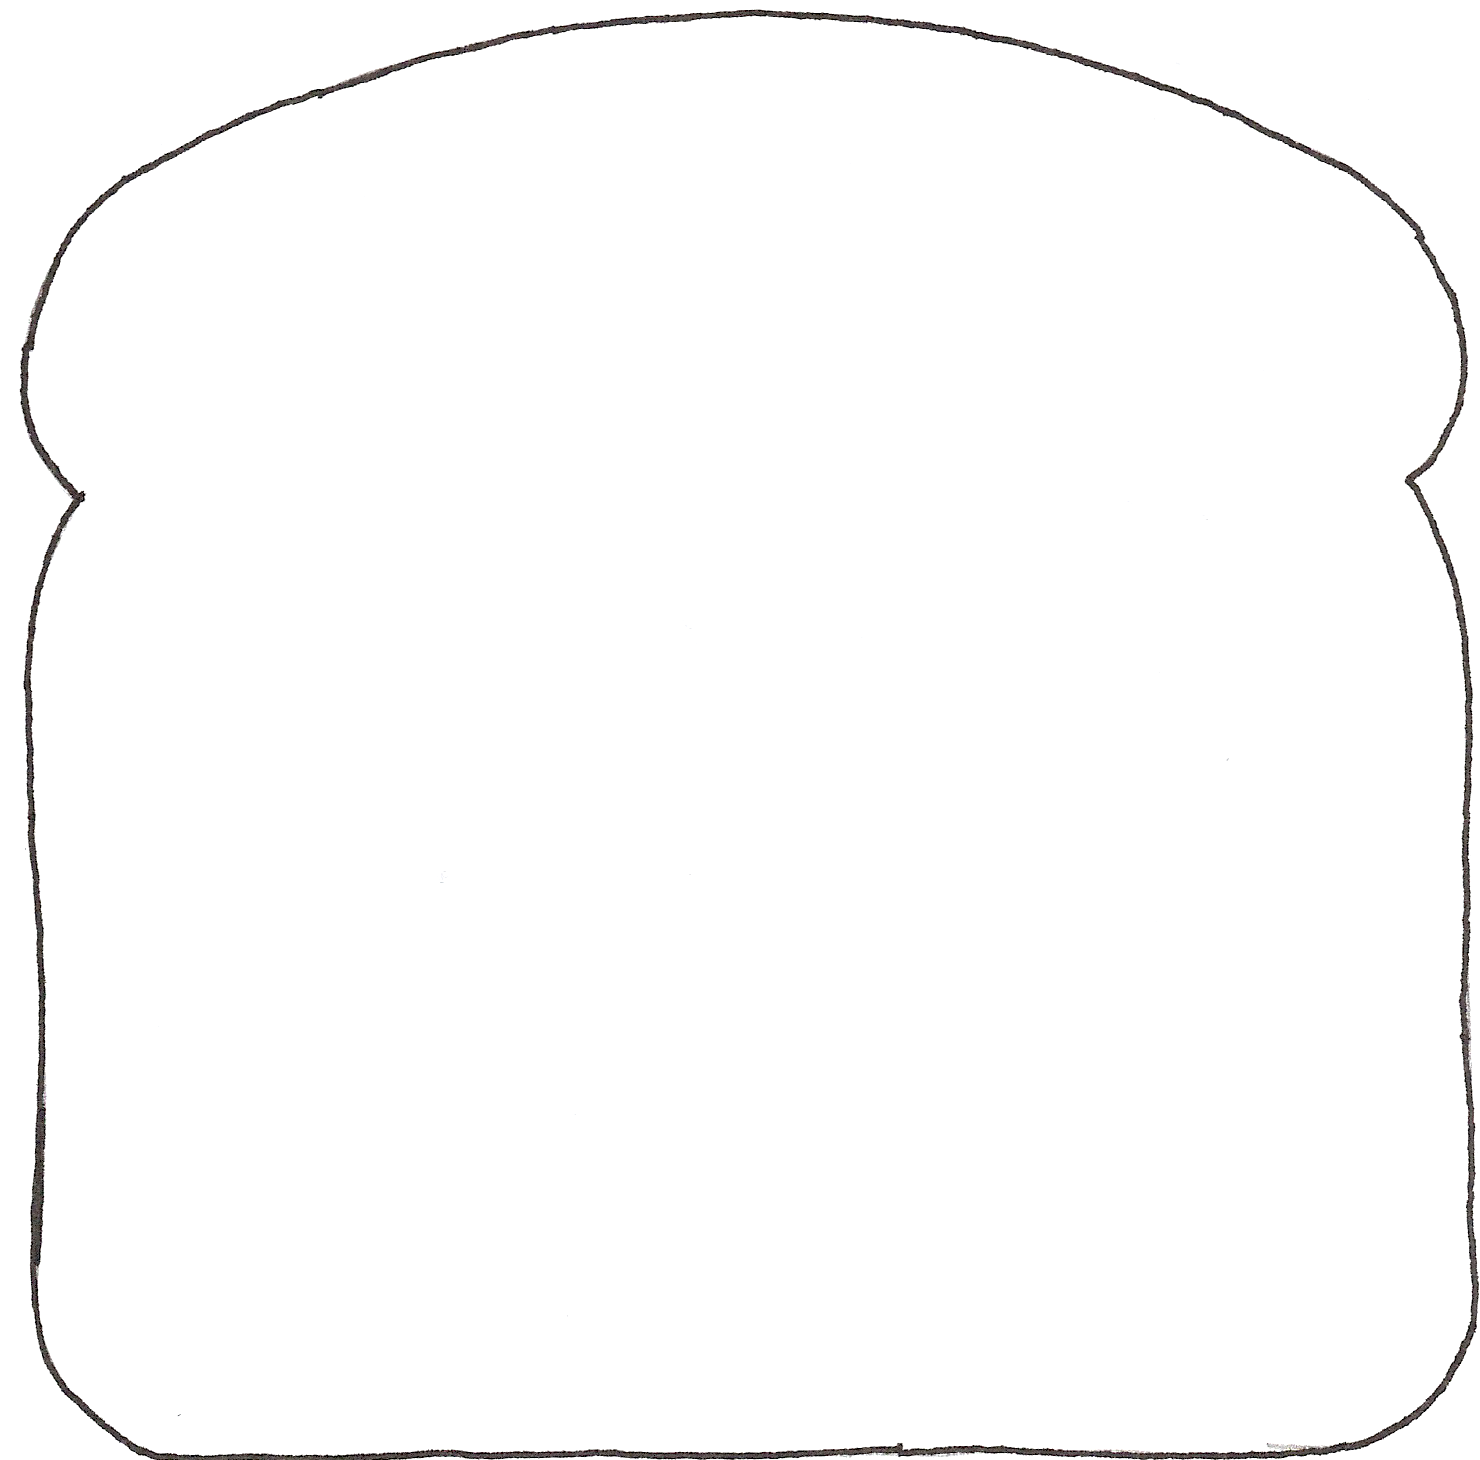 Slice Of Bread Template Google Image Result For Http2